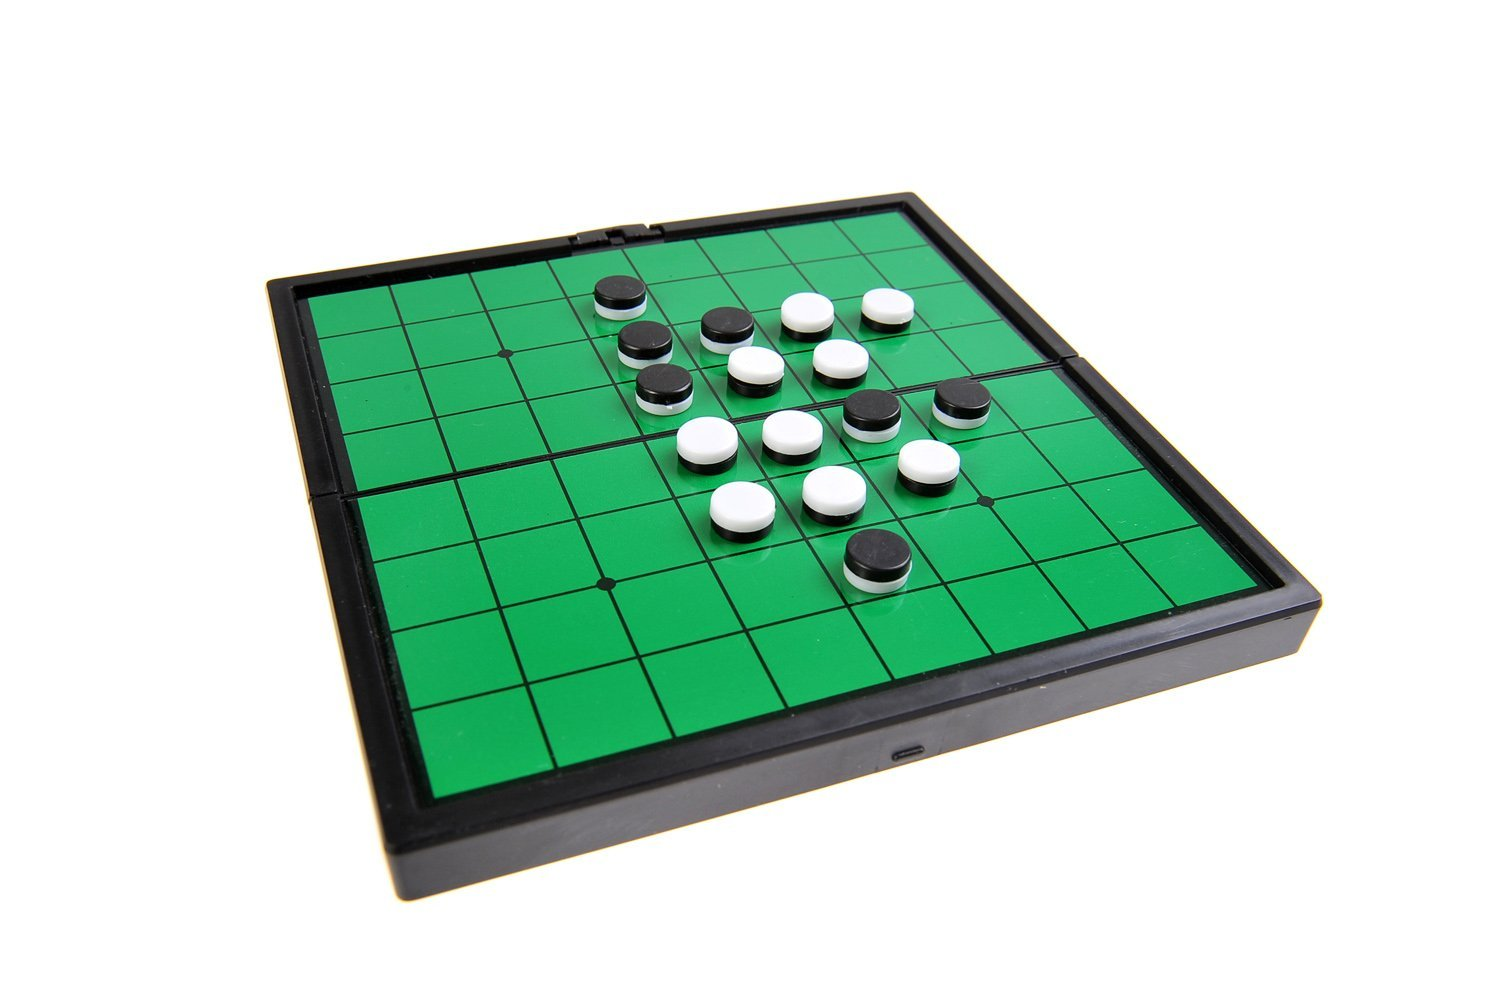 Quantum Abacus Magnetic Board Game (Super Mini Travel Size): Reversi - Magnetic Game Pieces, Foldable Board, 5.04 x 5.04 x 0.39 inches, Mod. SC3654 (DE) The Khan Outdoor & Lifestyle Company